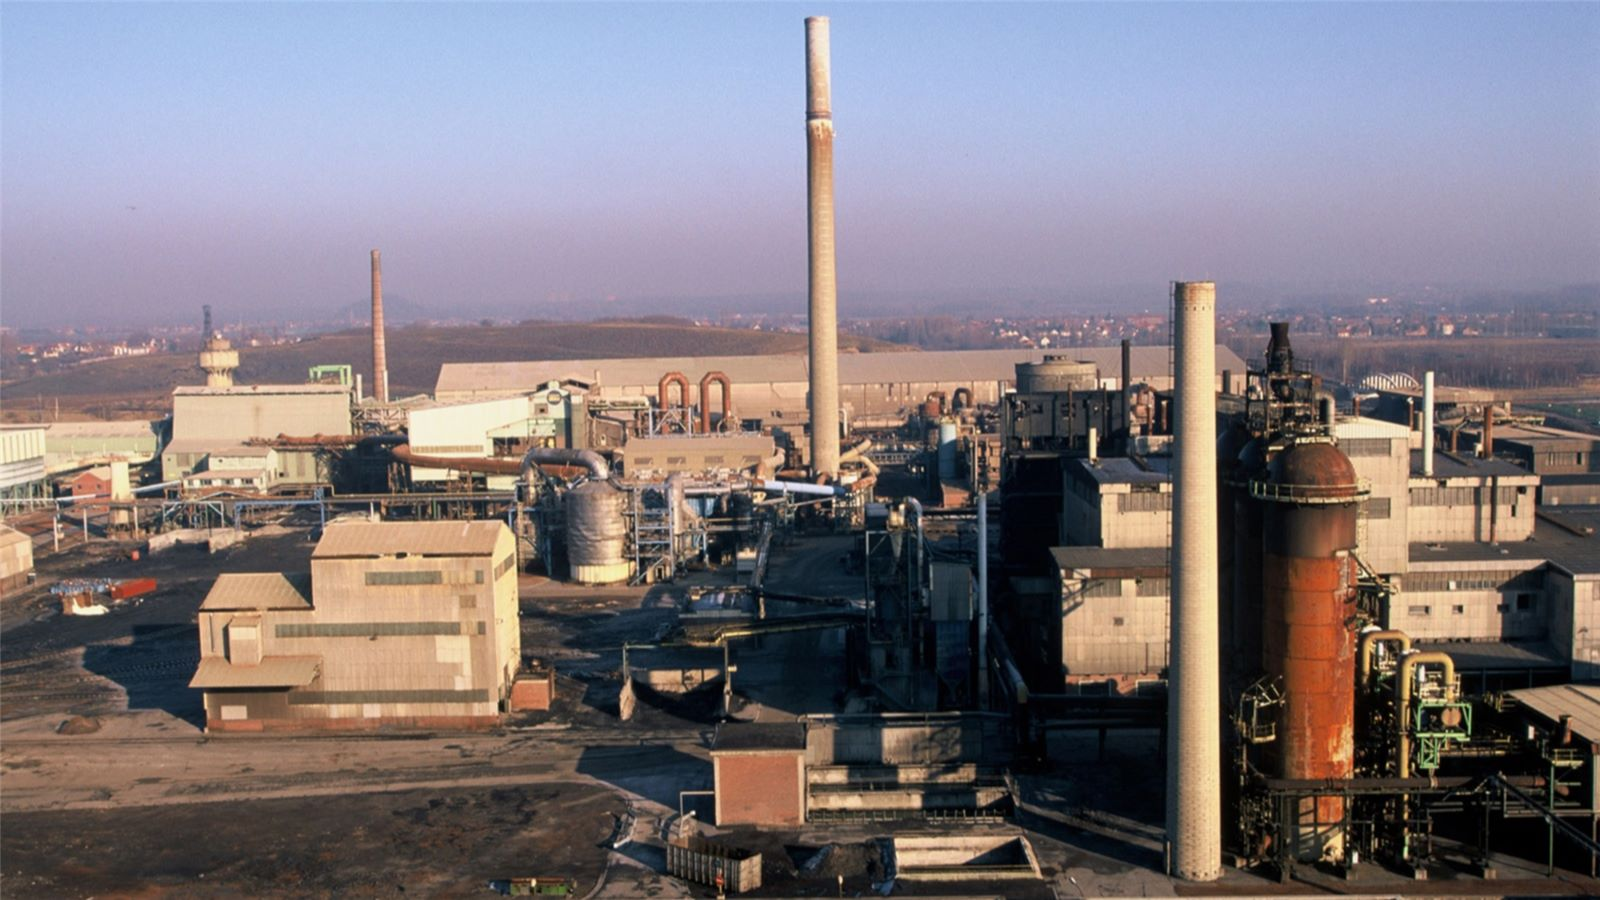 Metaleurop nord plant in France